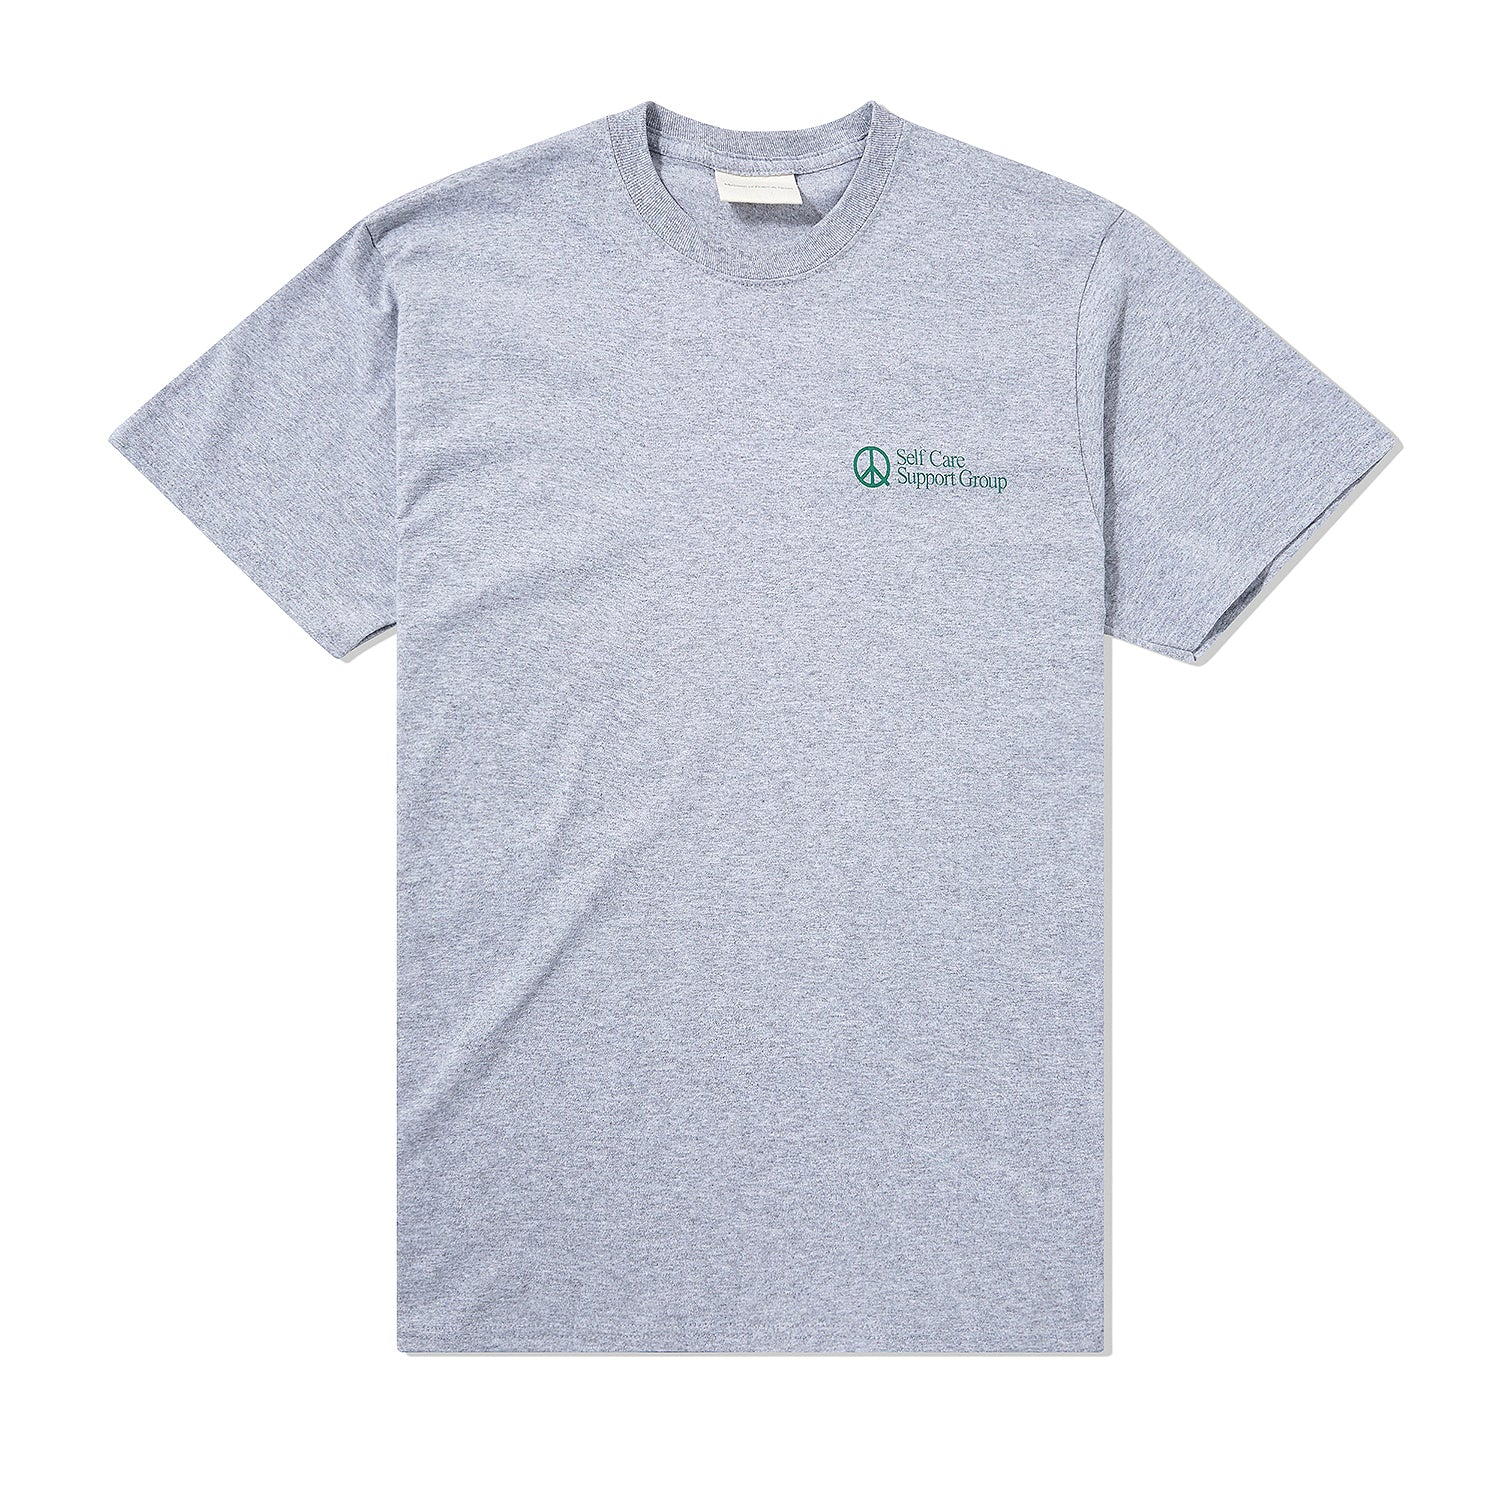 S.C.S.G Tee, Heather Grey